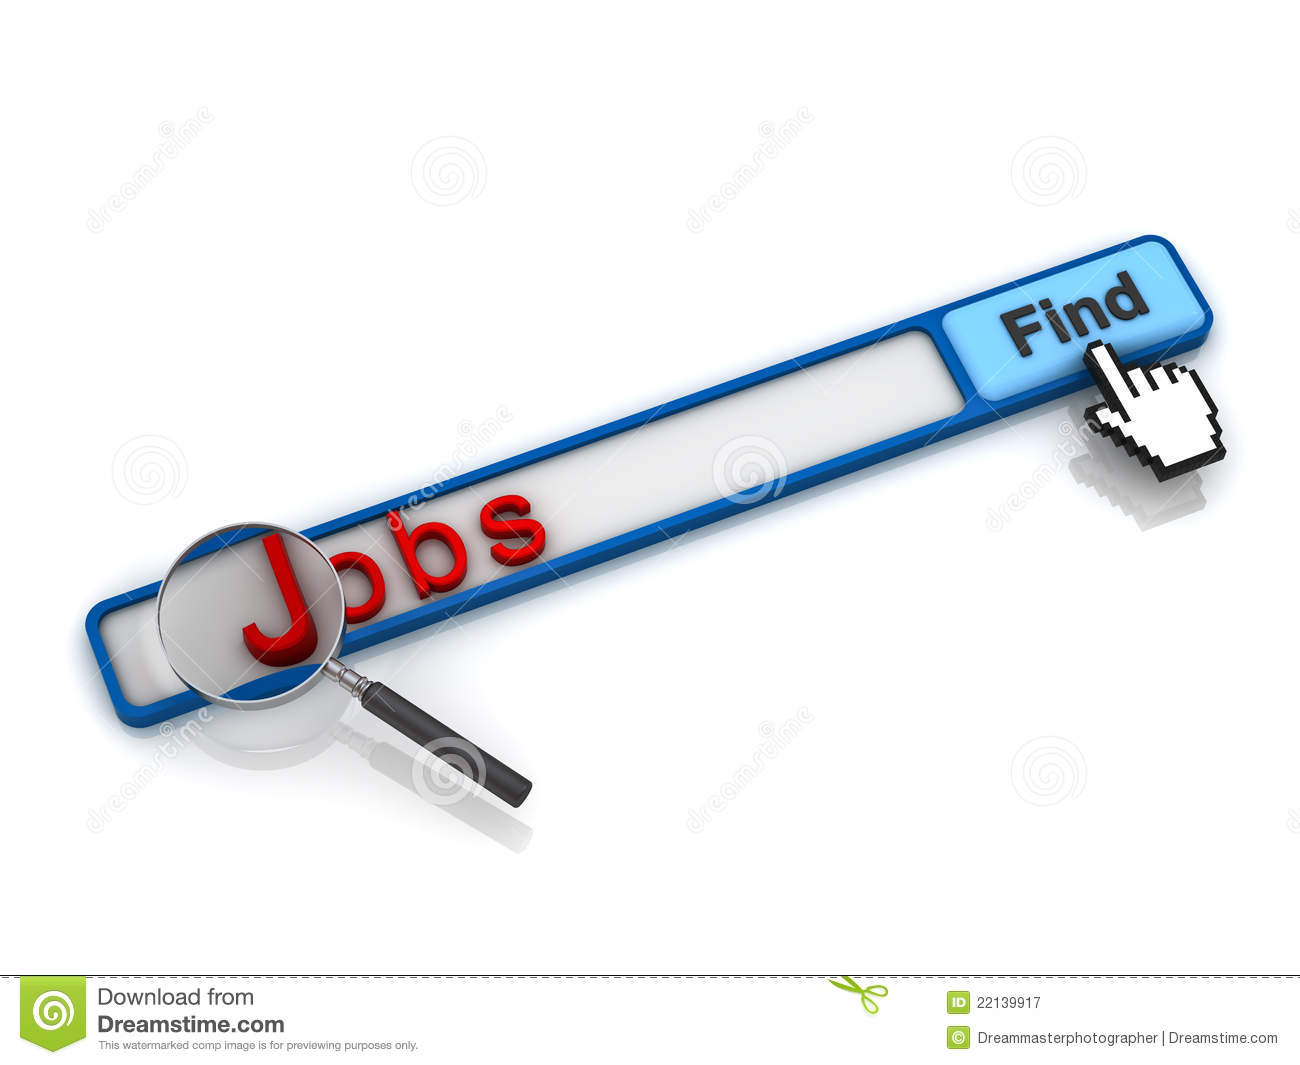 internet jobb små oljebolag search our norwalk ct internet job listings to great local jobs apply online for internet jobs today go jobing